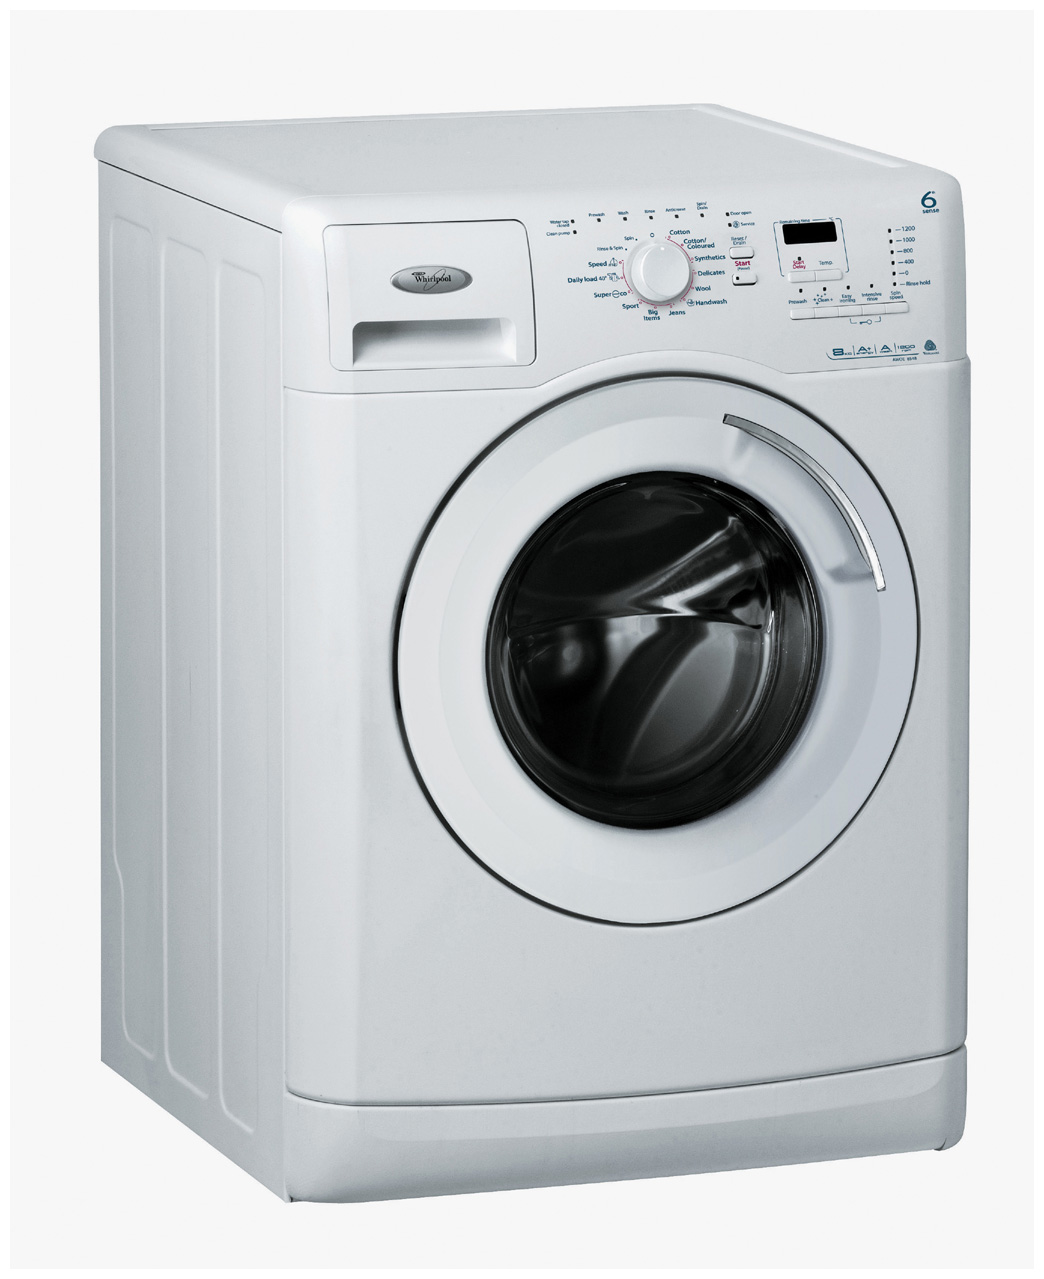 Things To Consider Before Buying A Washing Machine | The ...